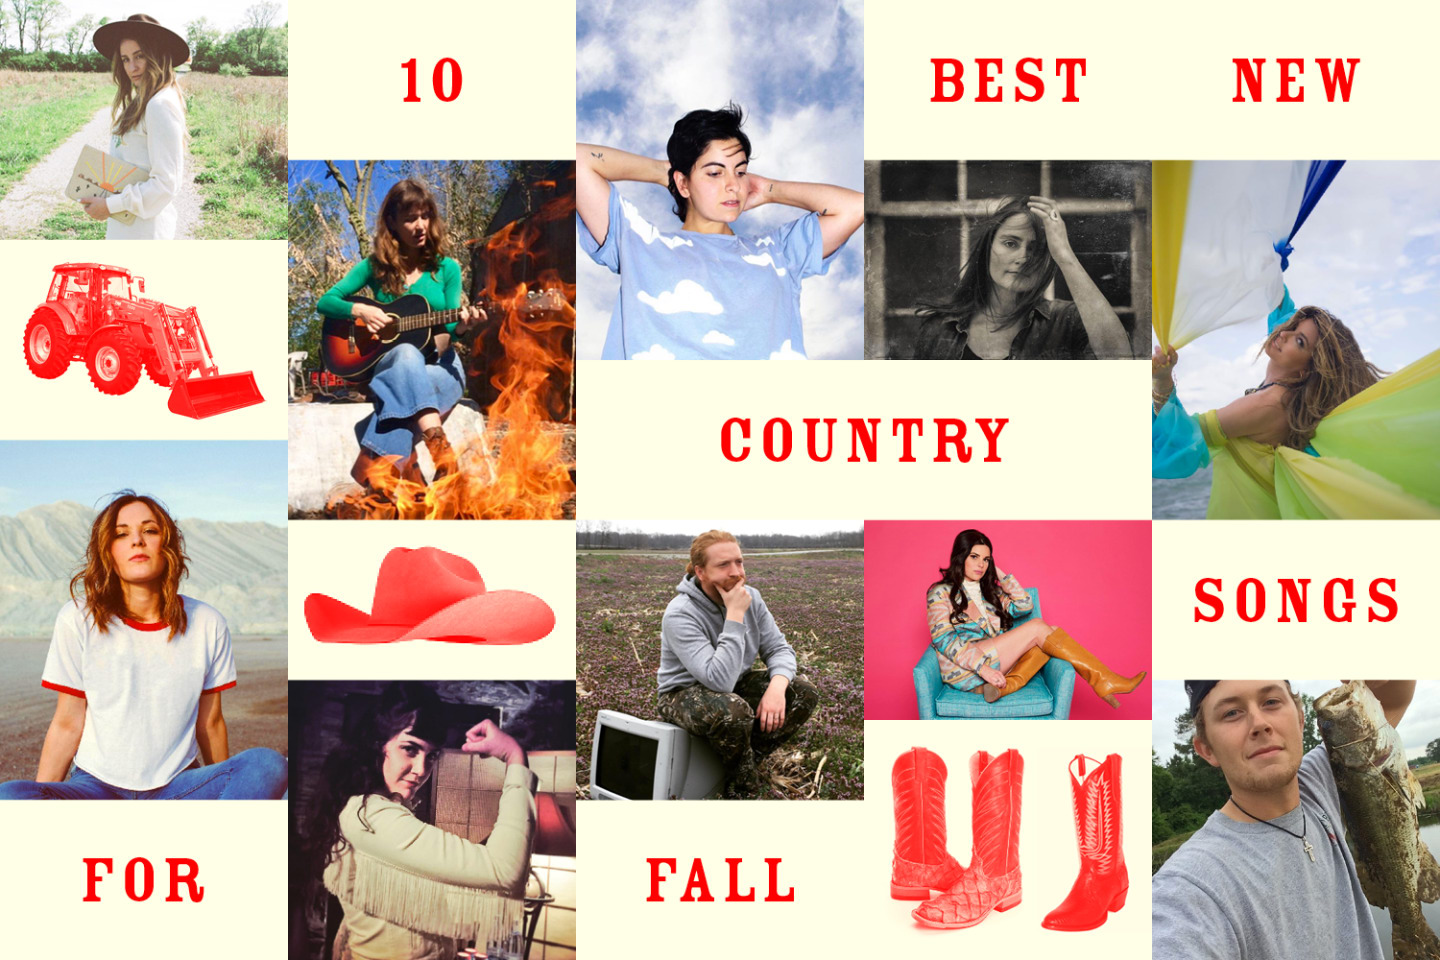 10 amazing country songs for Fall